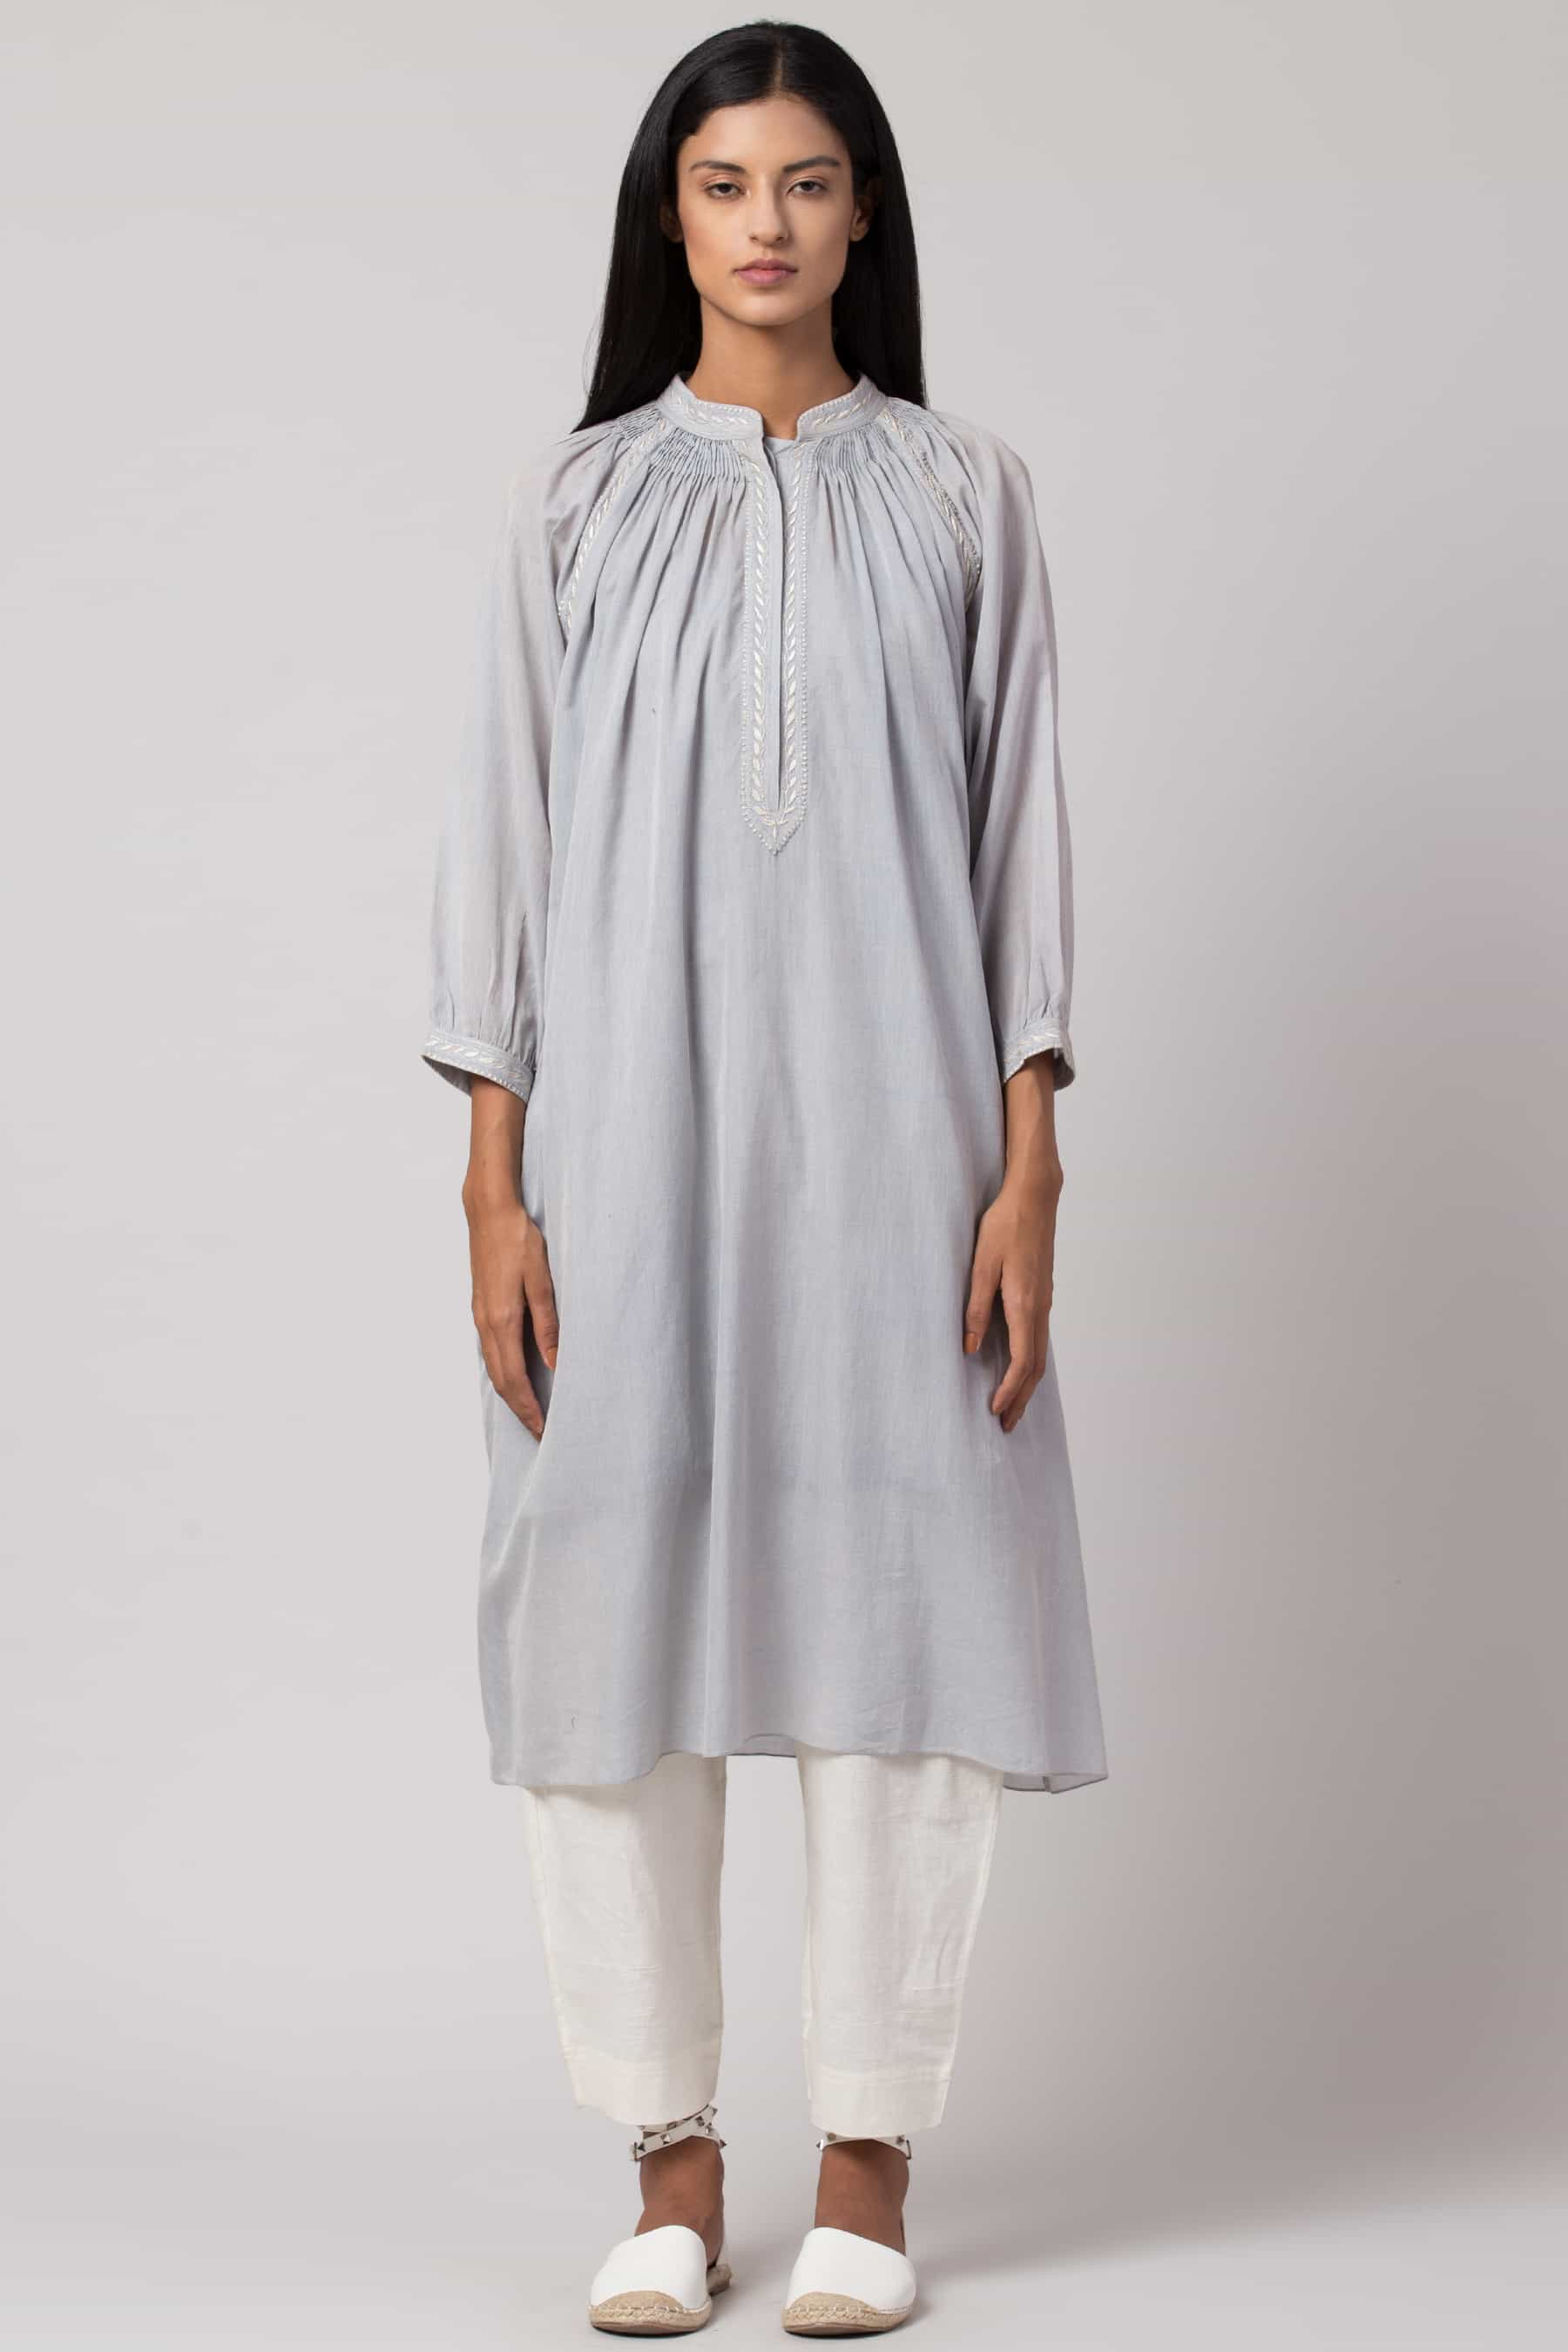 Baby blue Chikankari tunic made in 100% handwoven yarn dyed cotton Chanderi - front